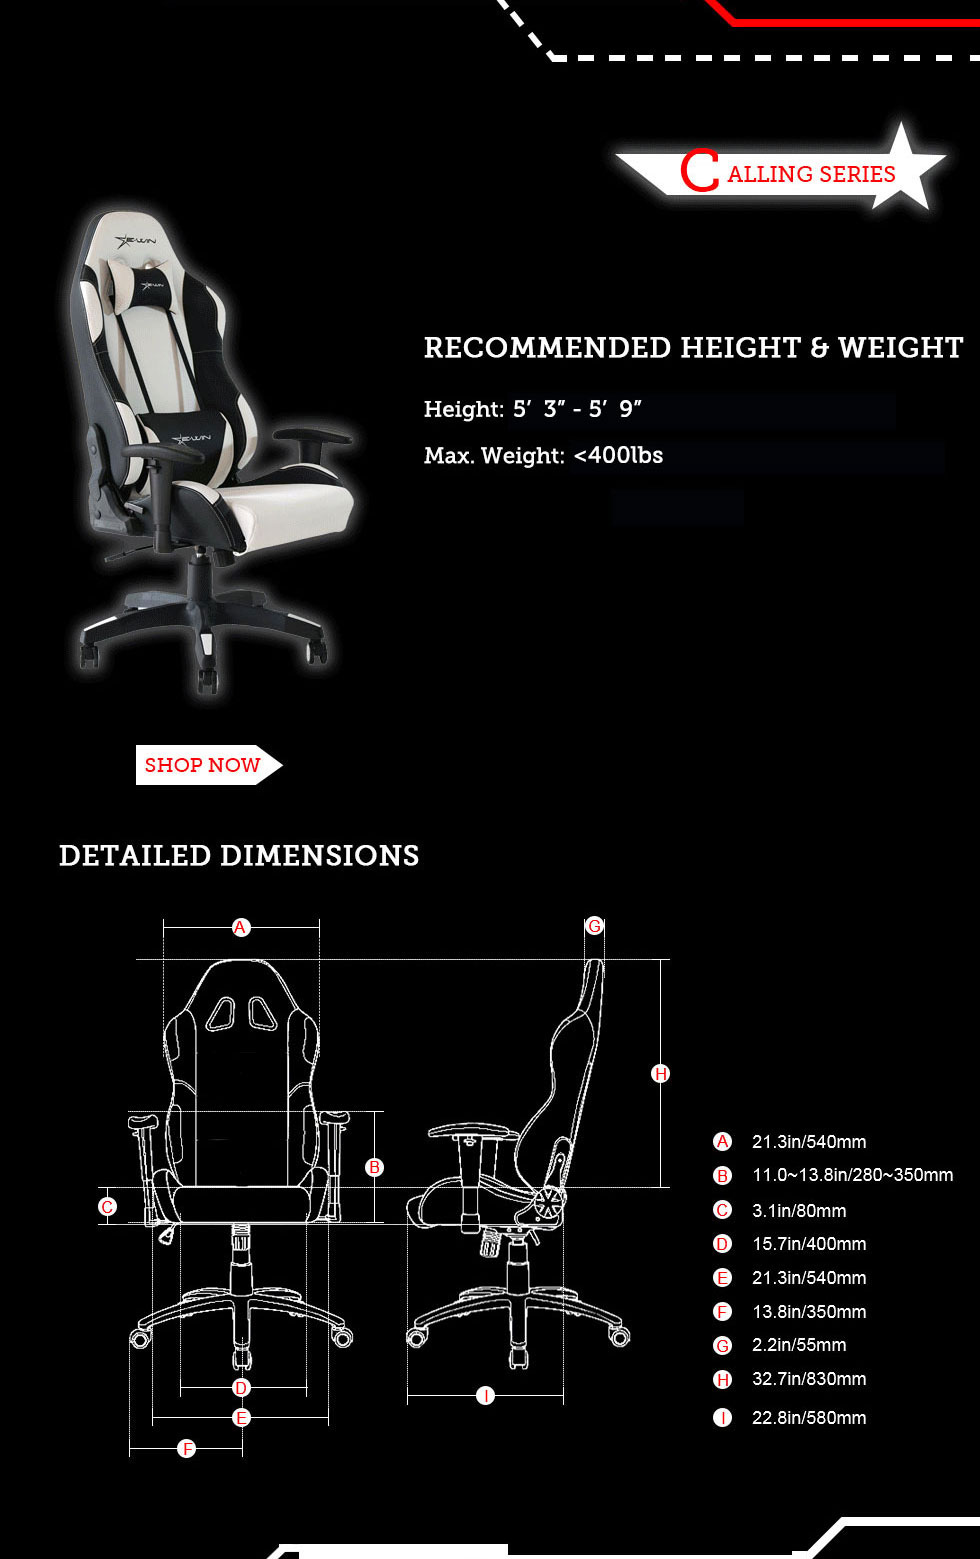 Dimensions of E-WIN Calling Series Gaming Chairs